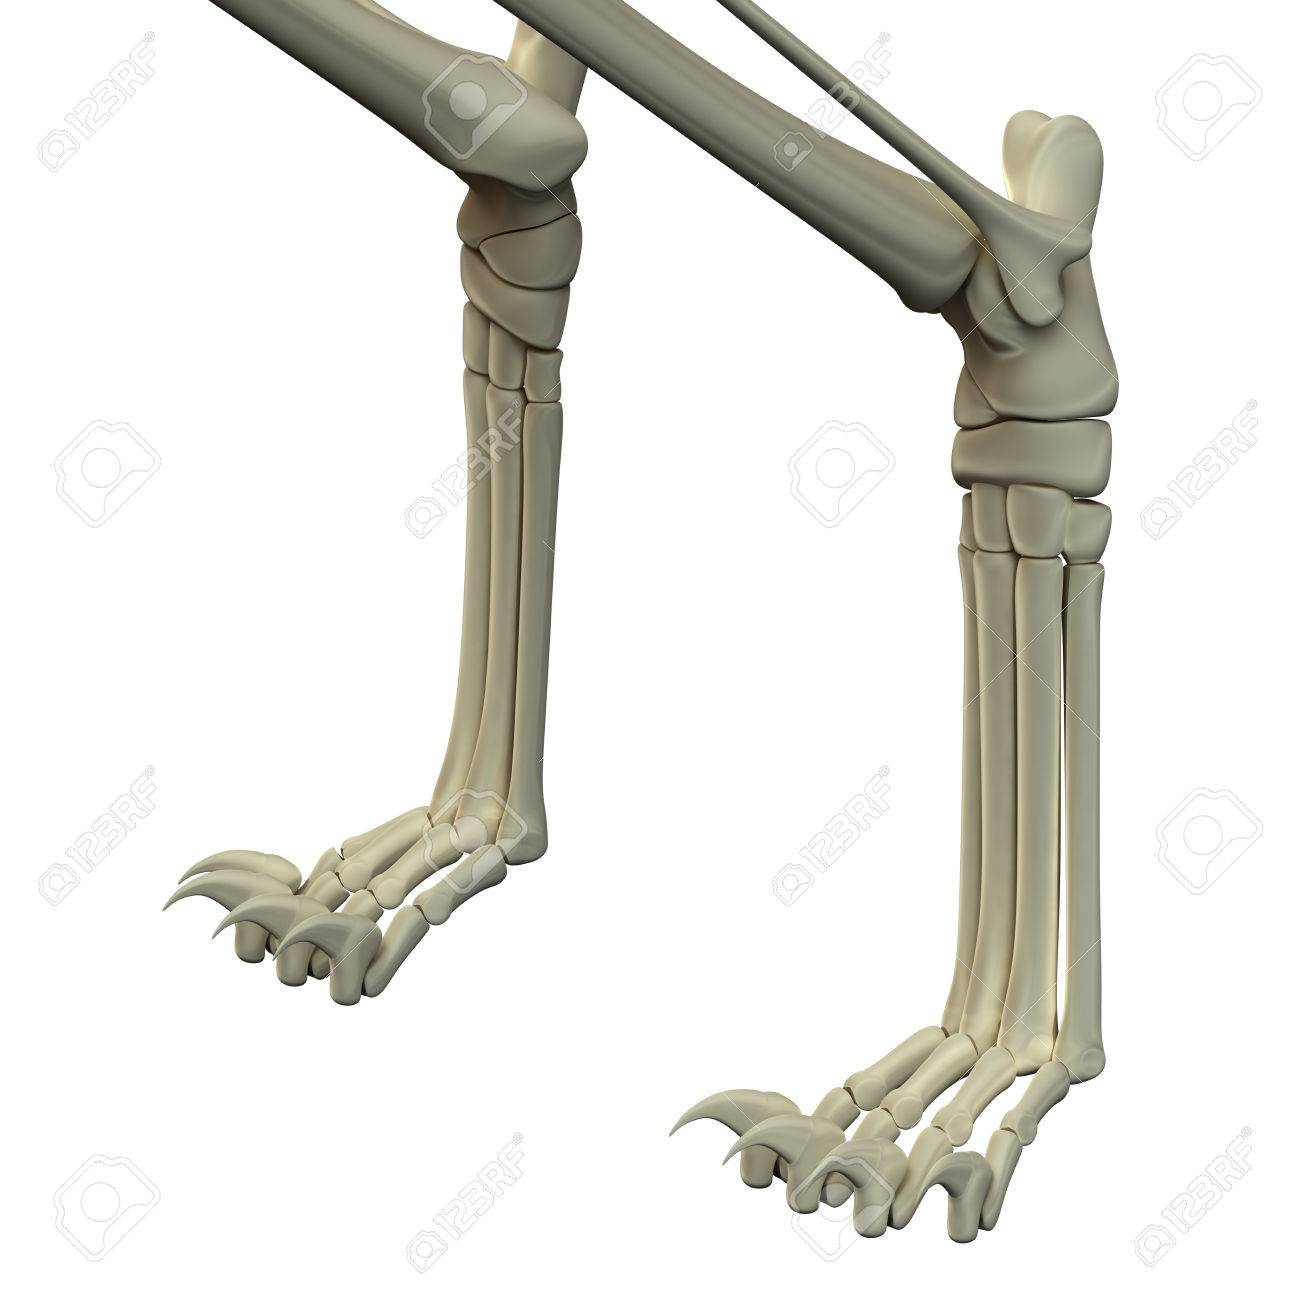 Cat Front Legs Anatomy Bones Stock Photo, Picture And Royalty Free ...